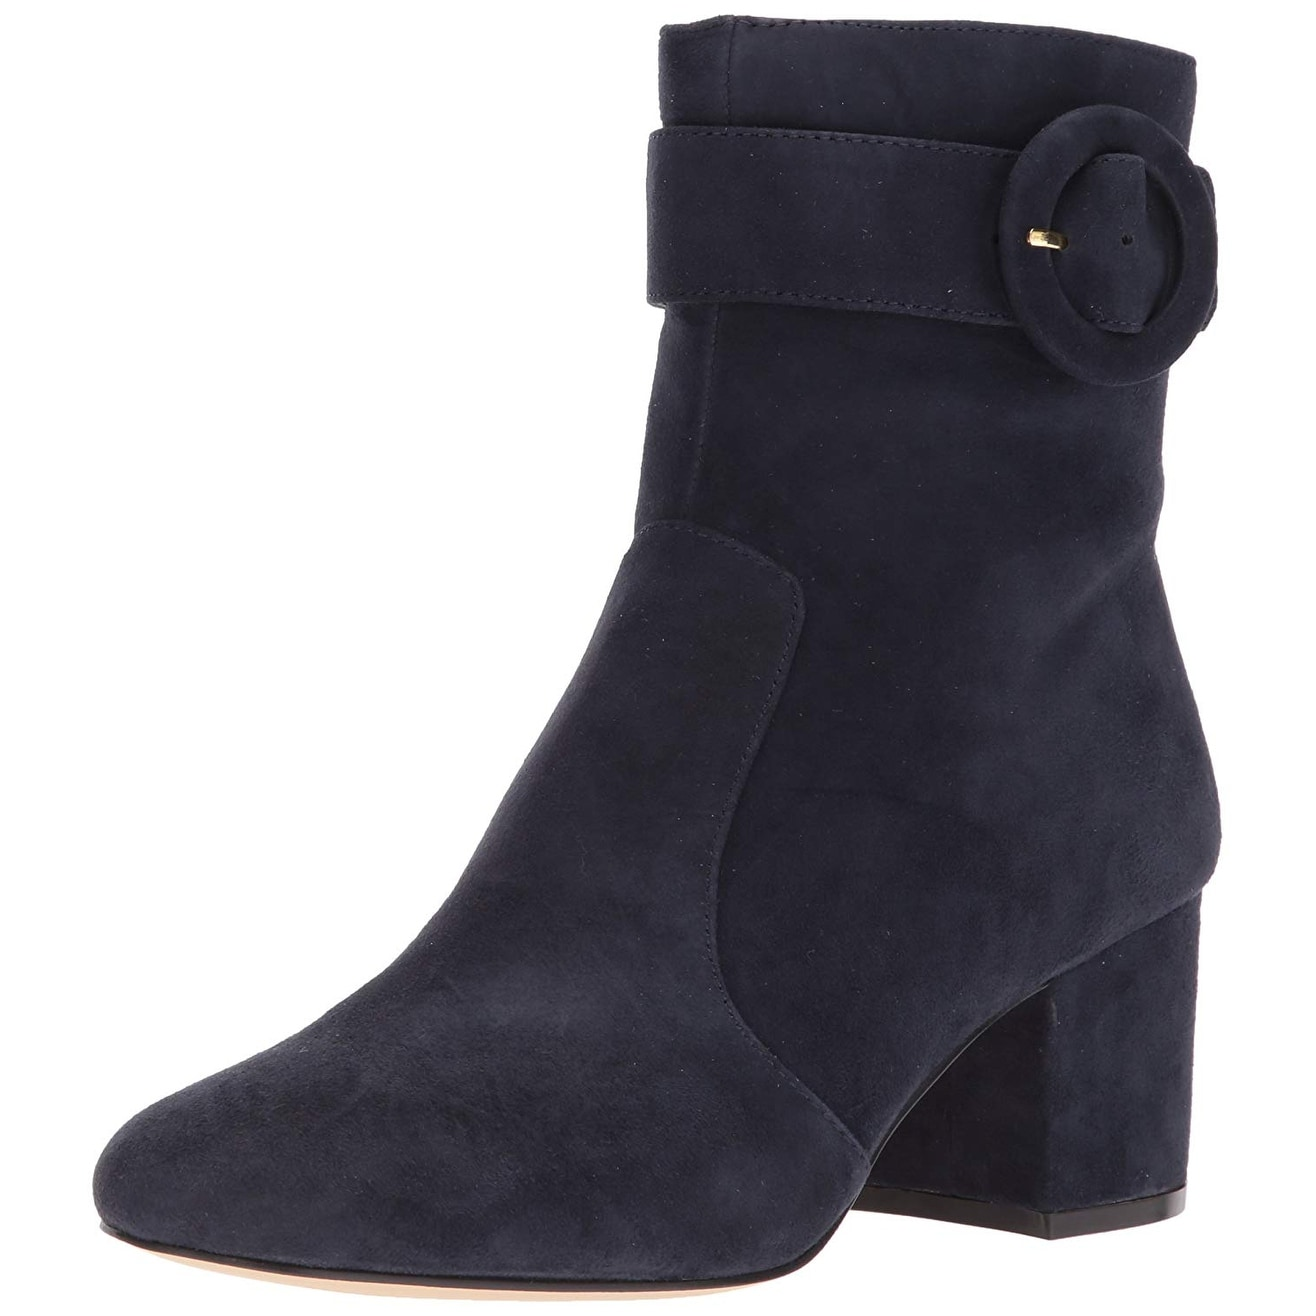 3f4f459e7e4 Buy Nine West Women s Boots Online at Overstock